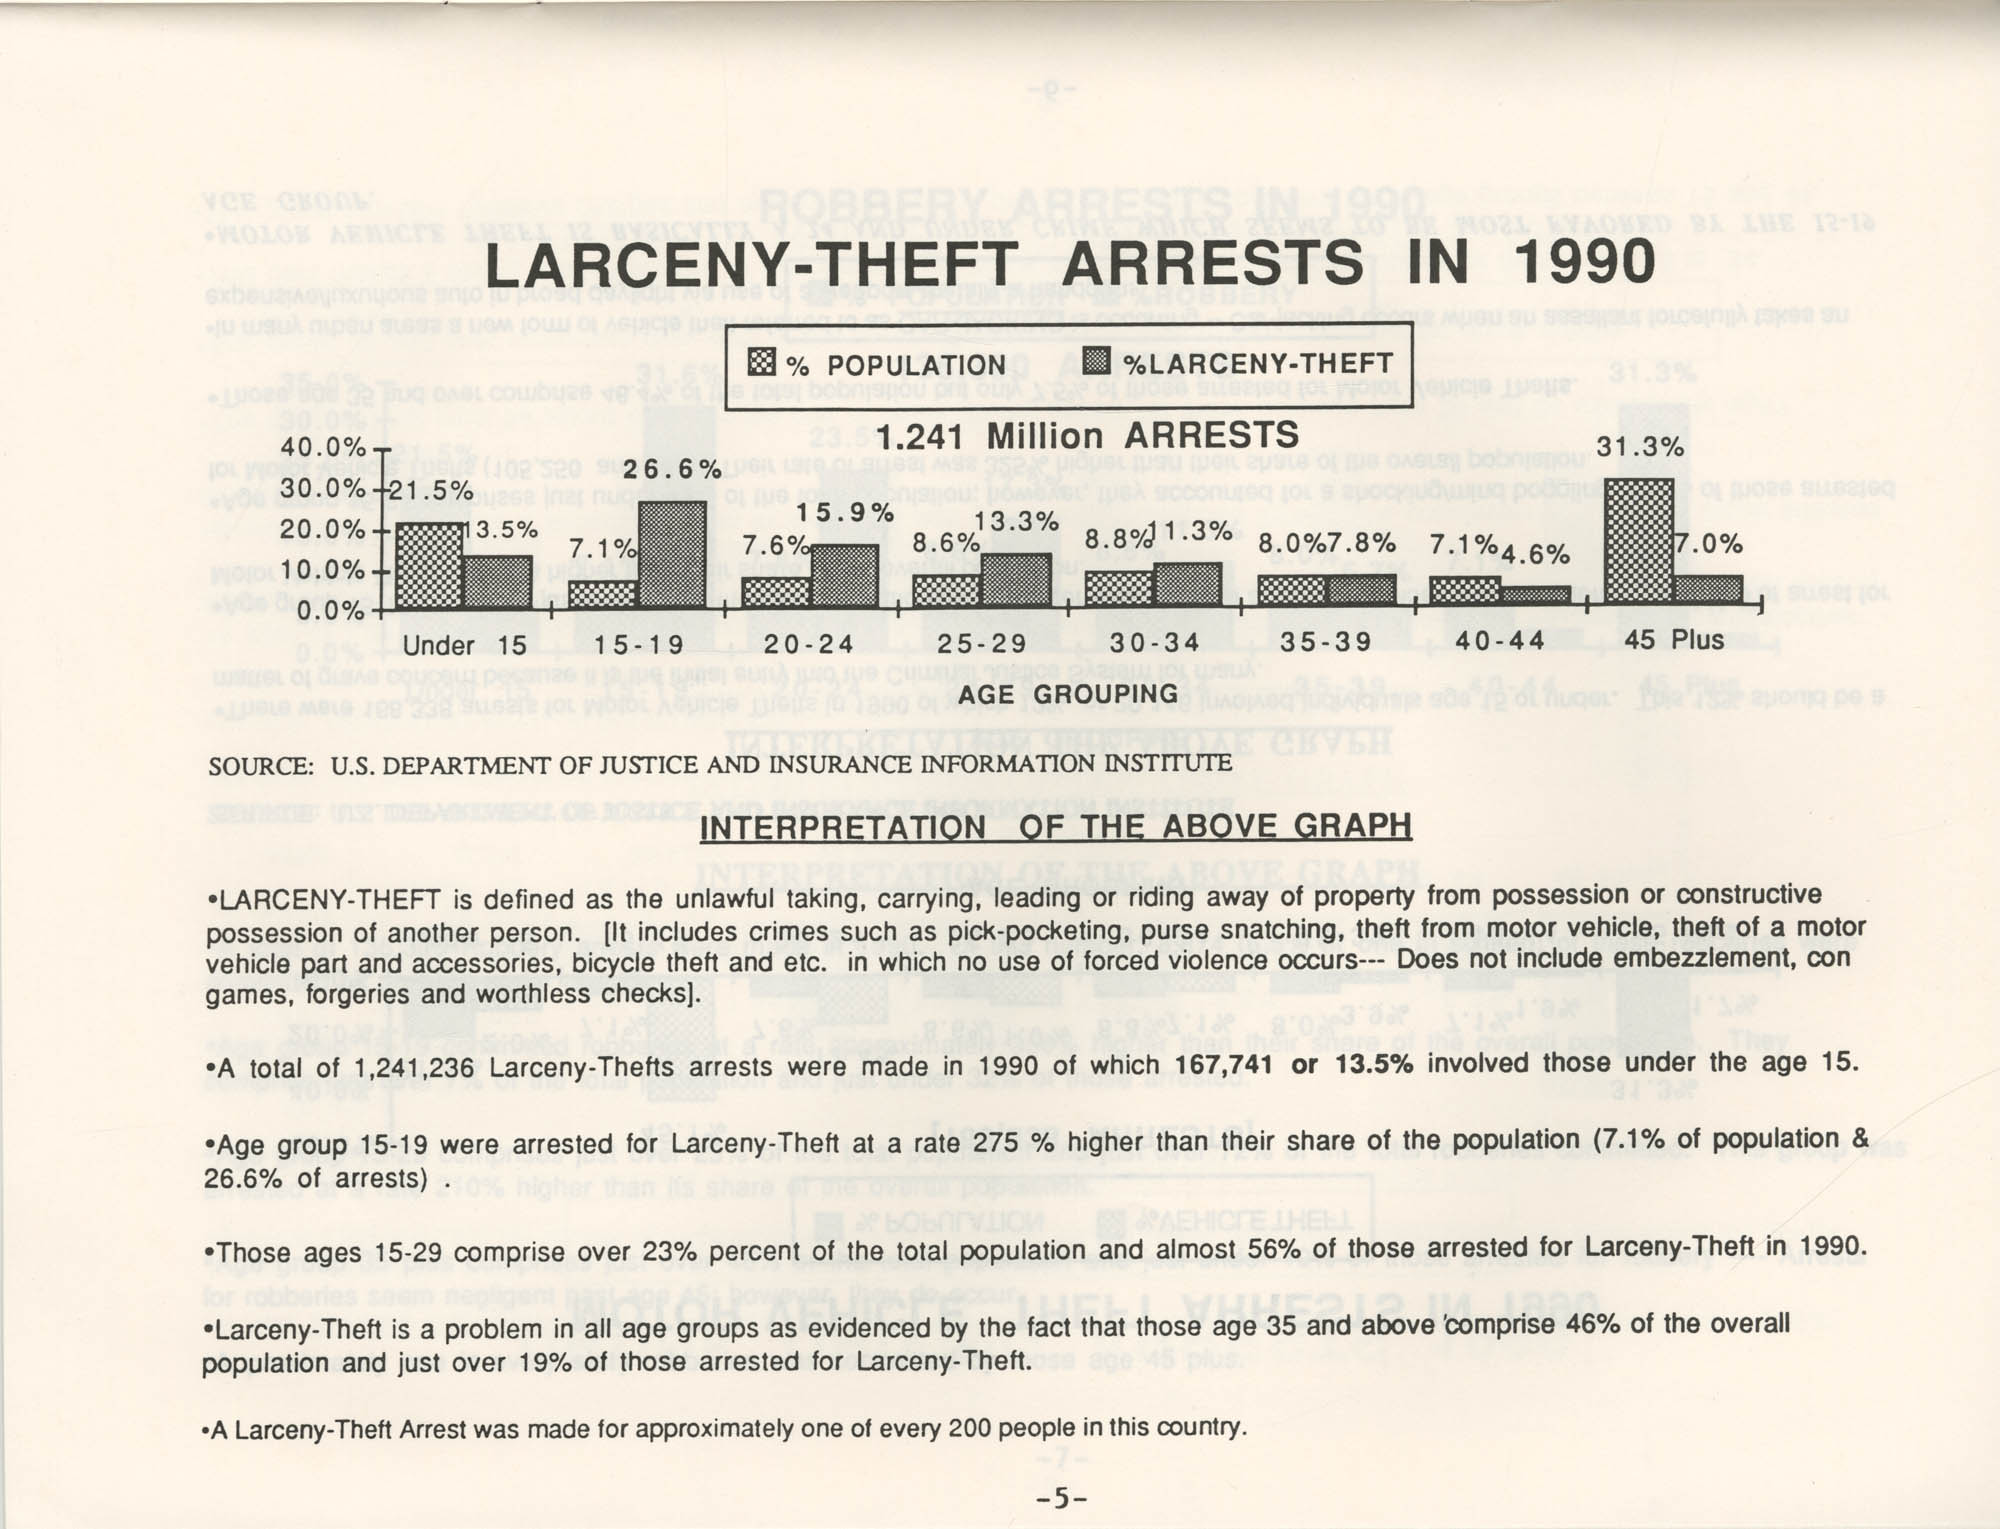 Crime and Criminal Activities in the U.S.A., NAACP National Board of Directors, Page 5